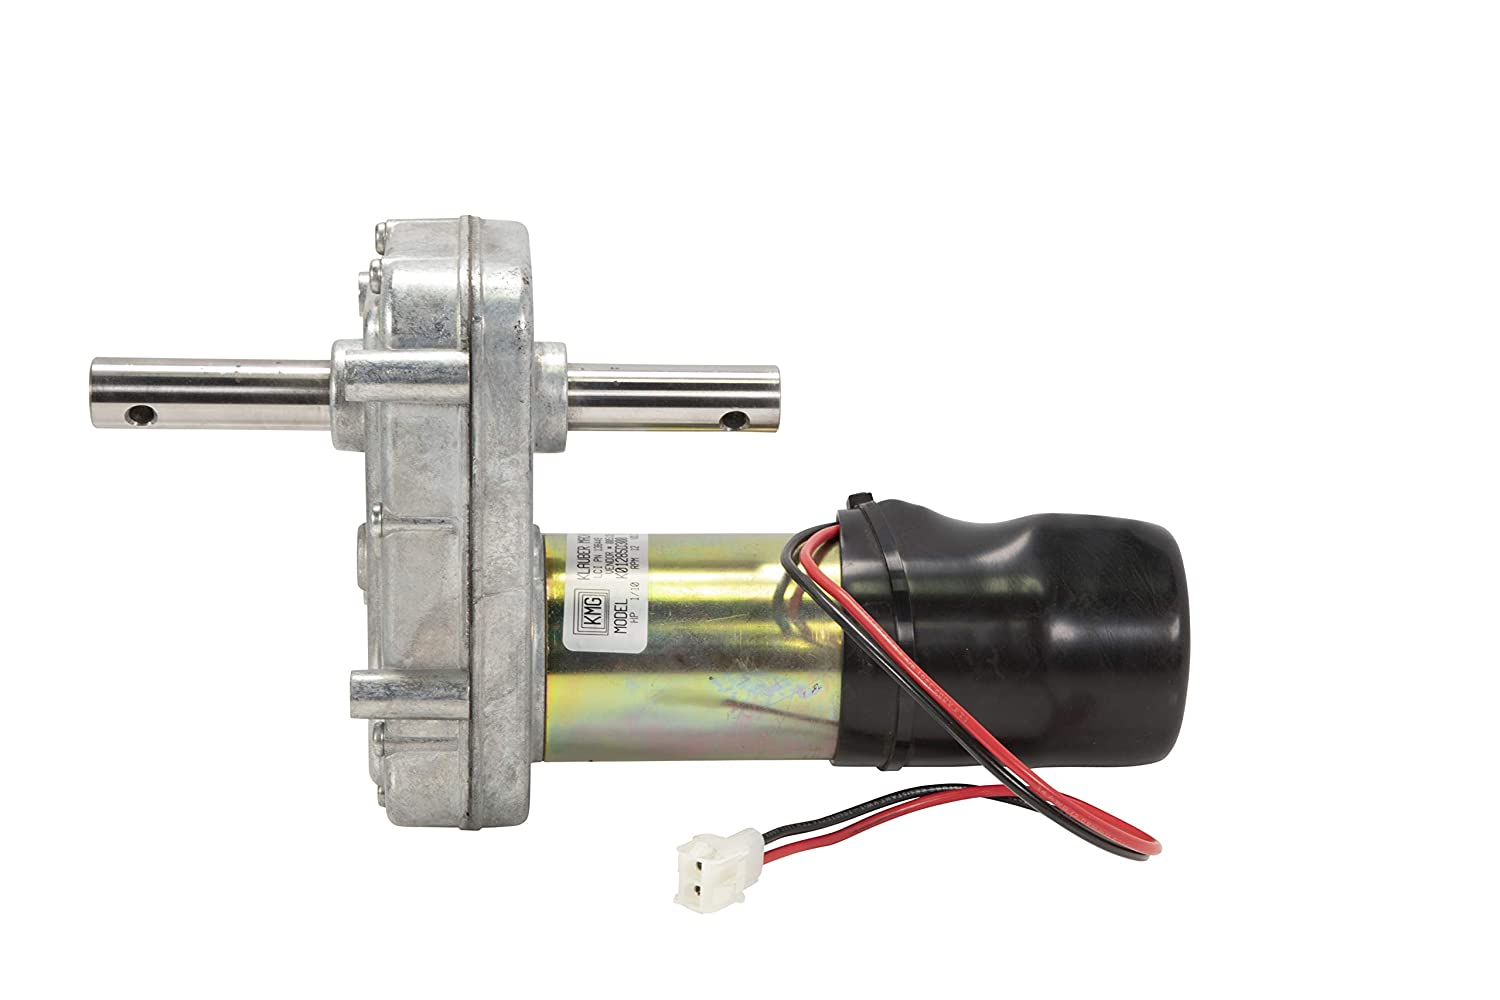 3//4 inches Drive Lippert 138449 Klauber D-300 RV Slide-Out Motor